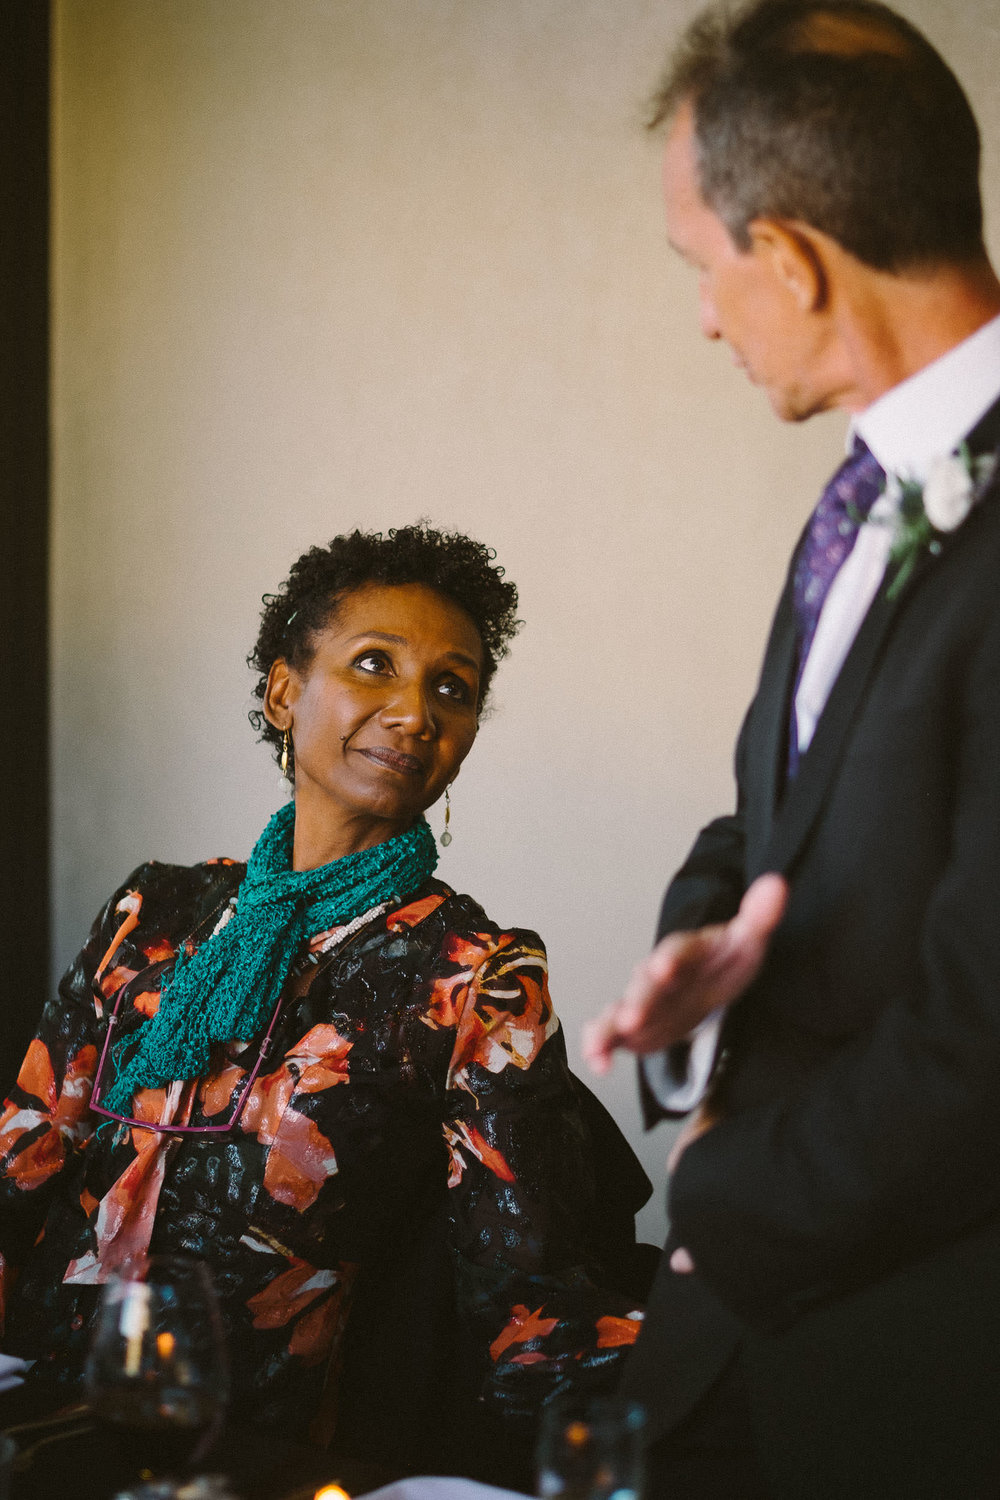 Mother of the groom looks tenderly at father of the bride during his wedding speech